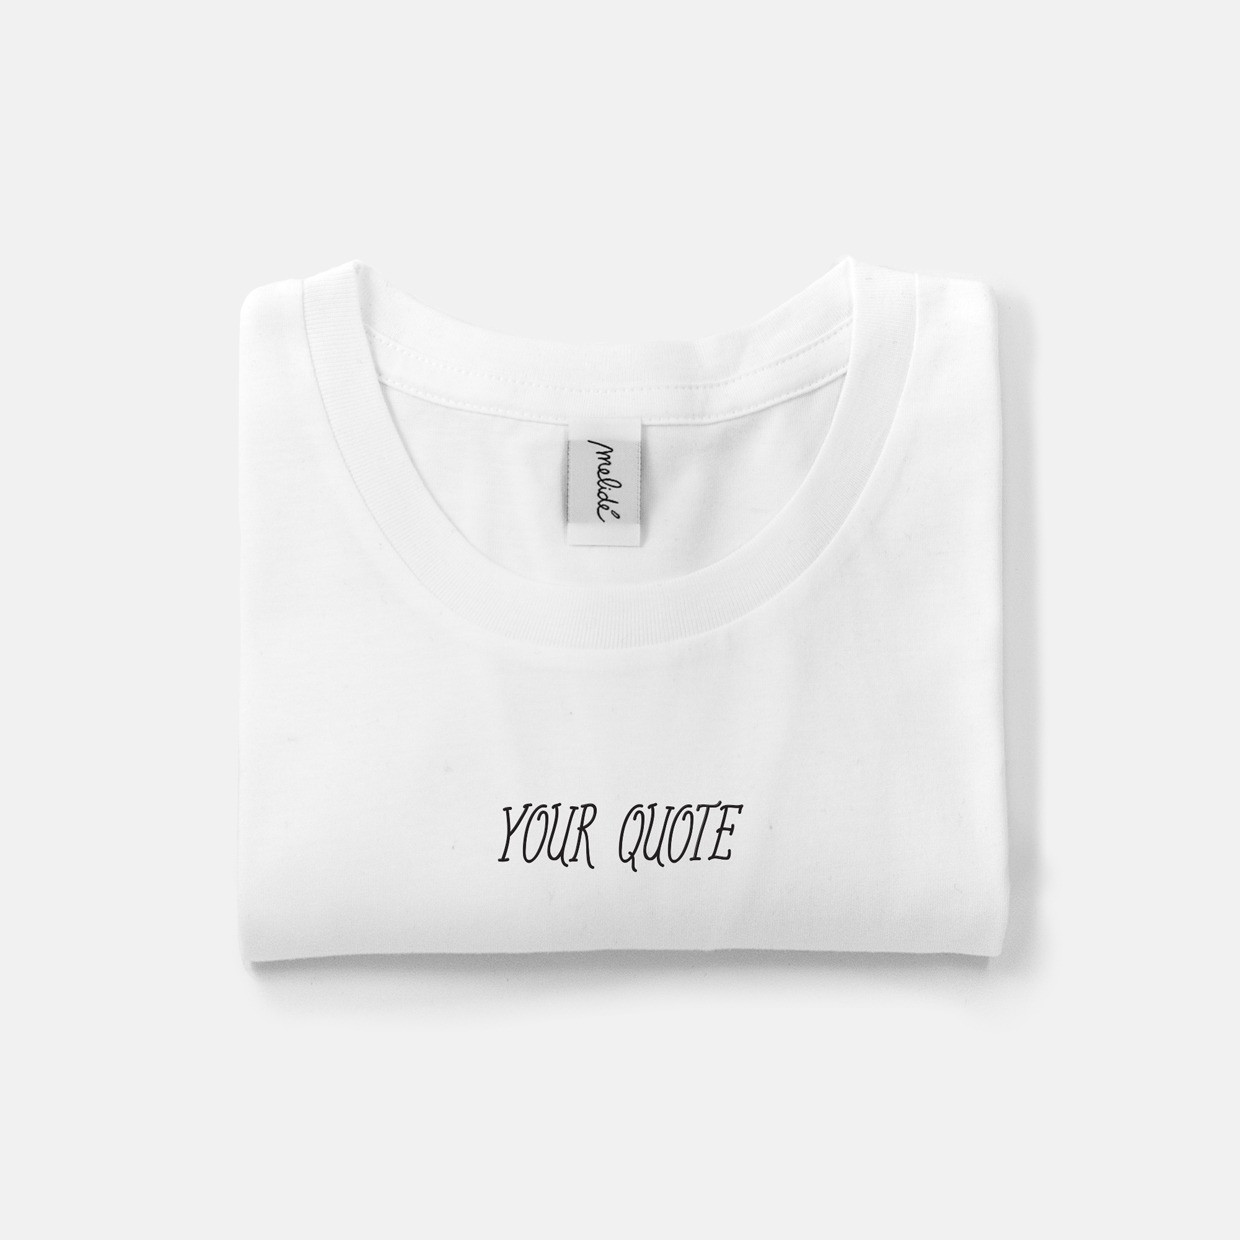 The YOUR QUOTE ultimate tee